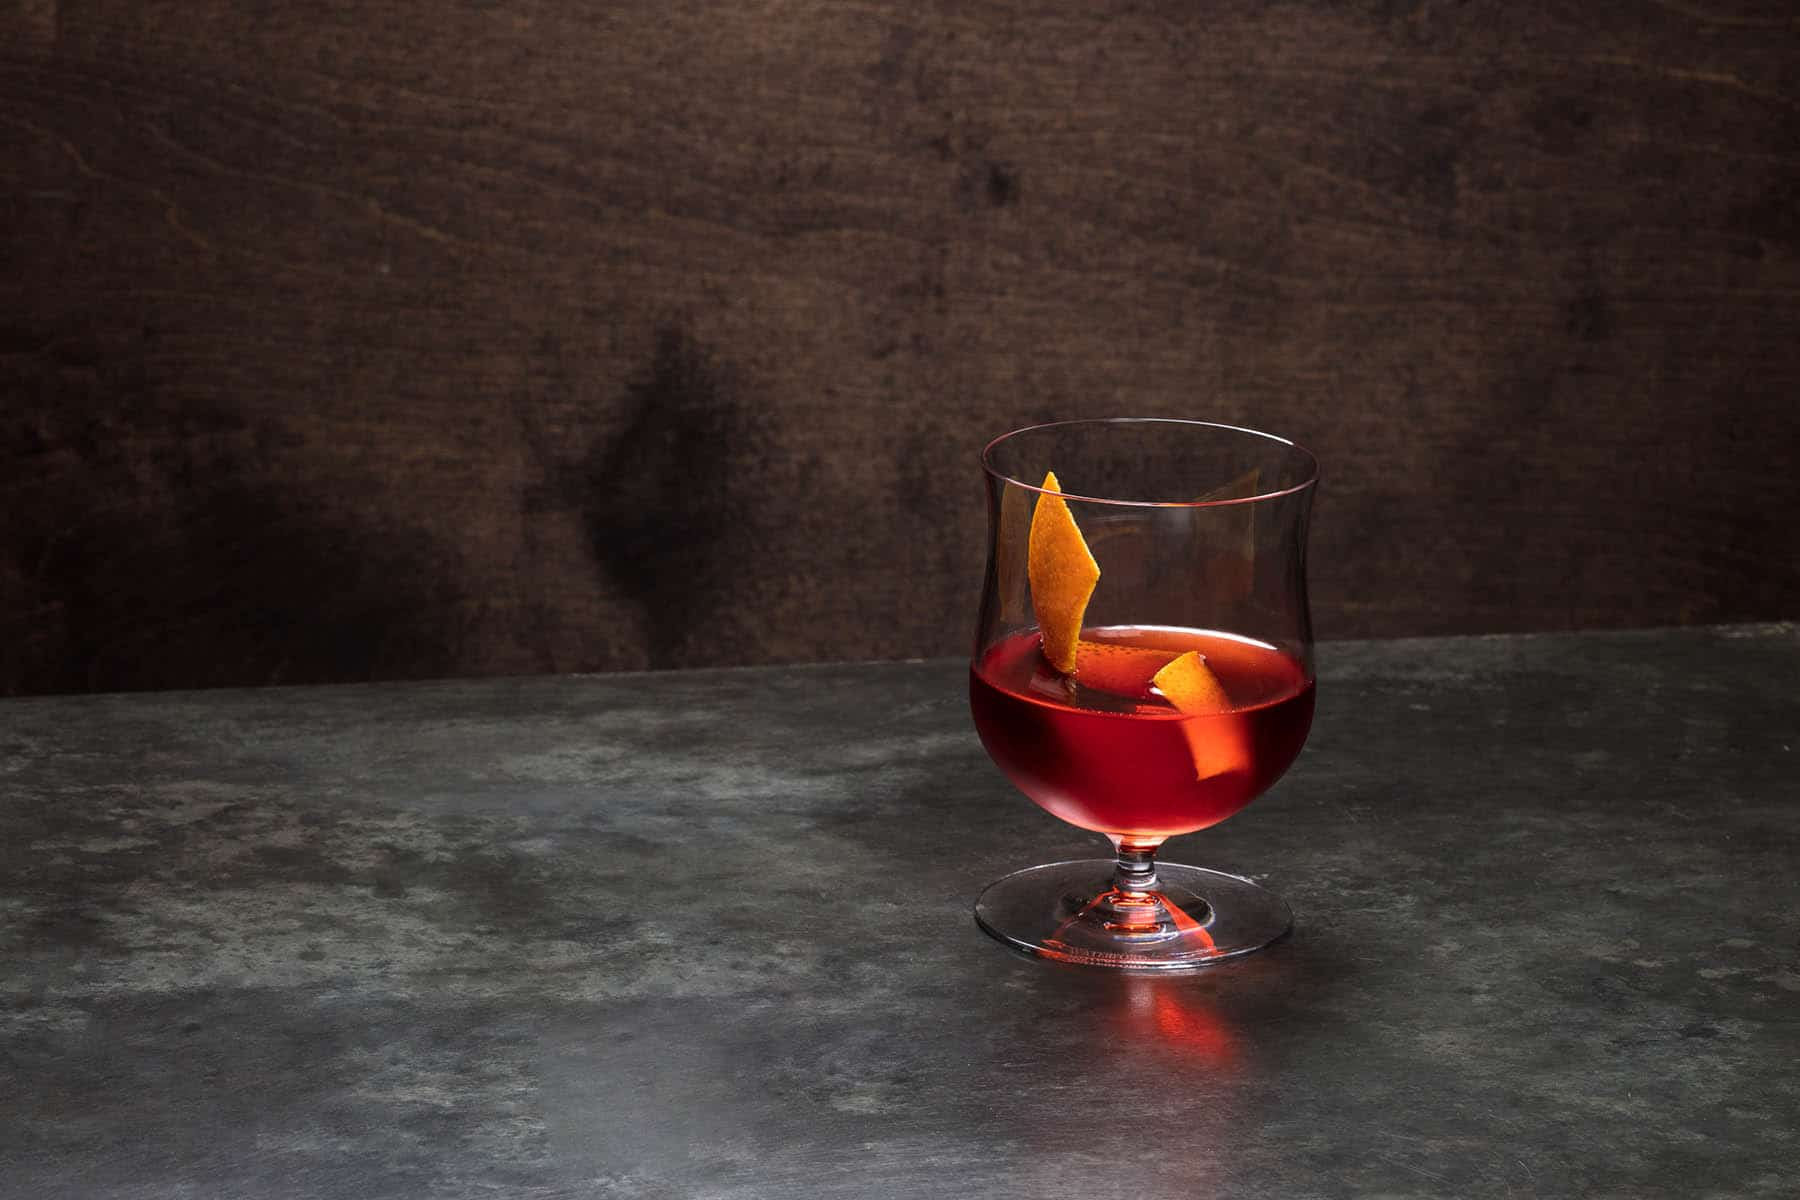 Seen here is an aged rum negroni served in a snifter glass with an orange peel.